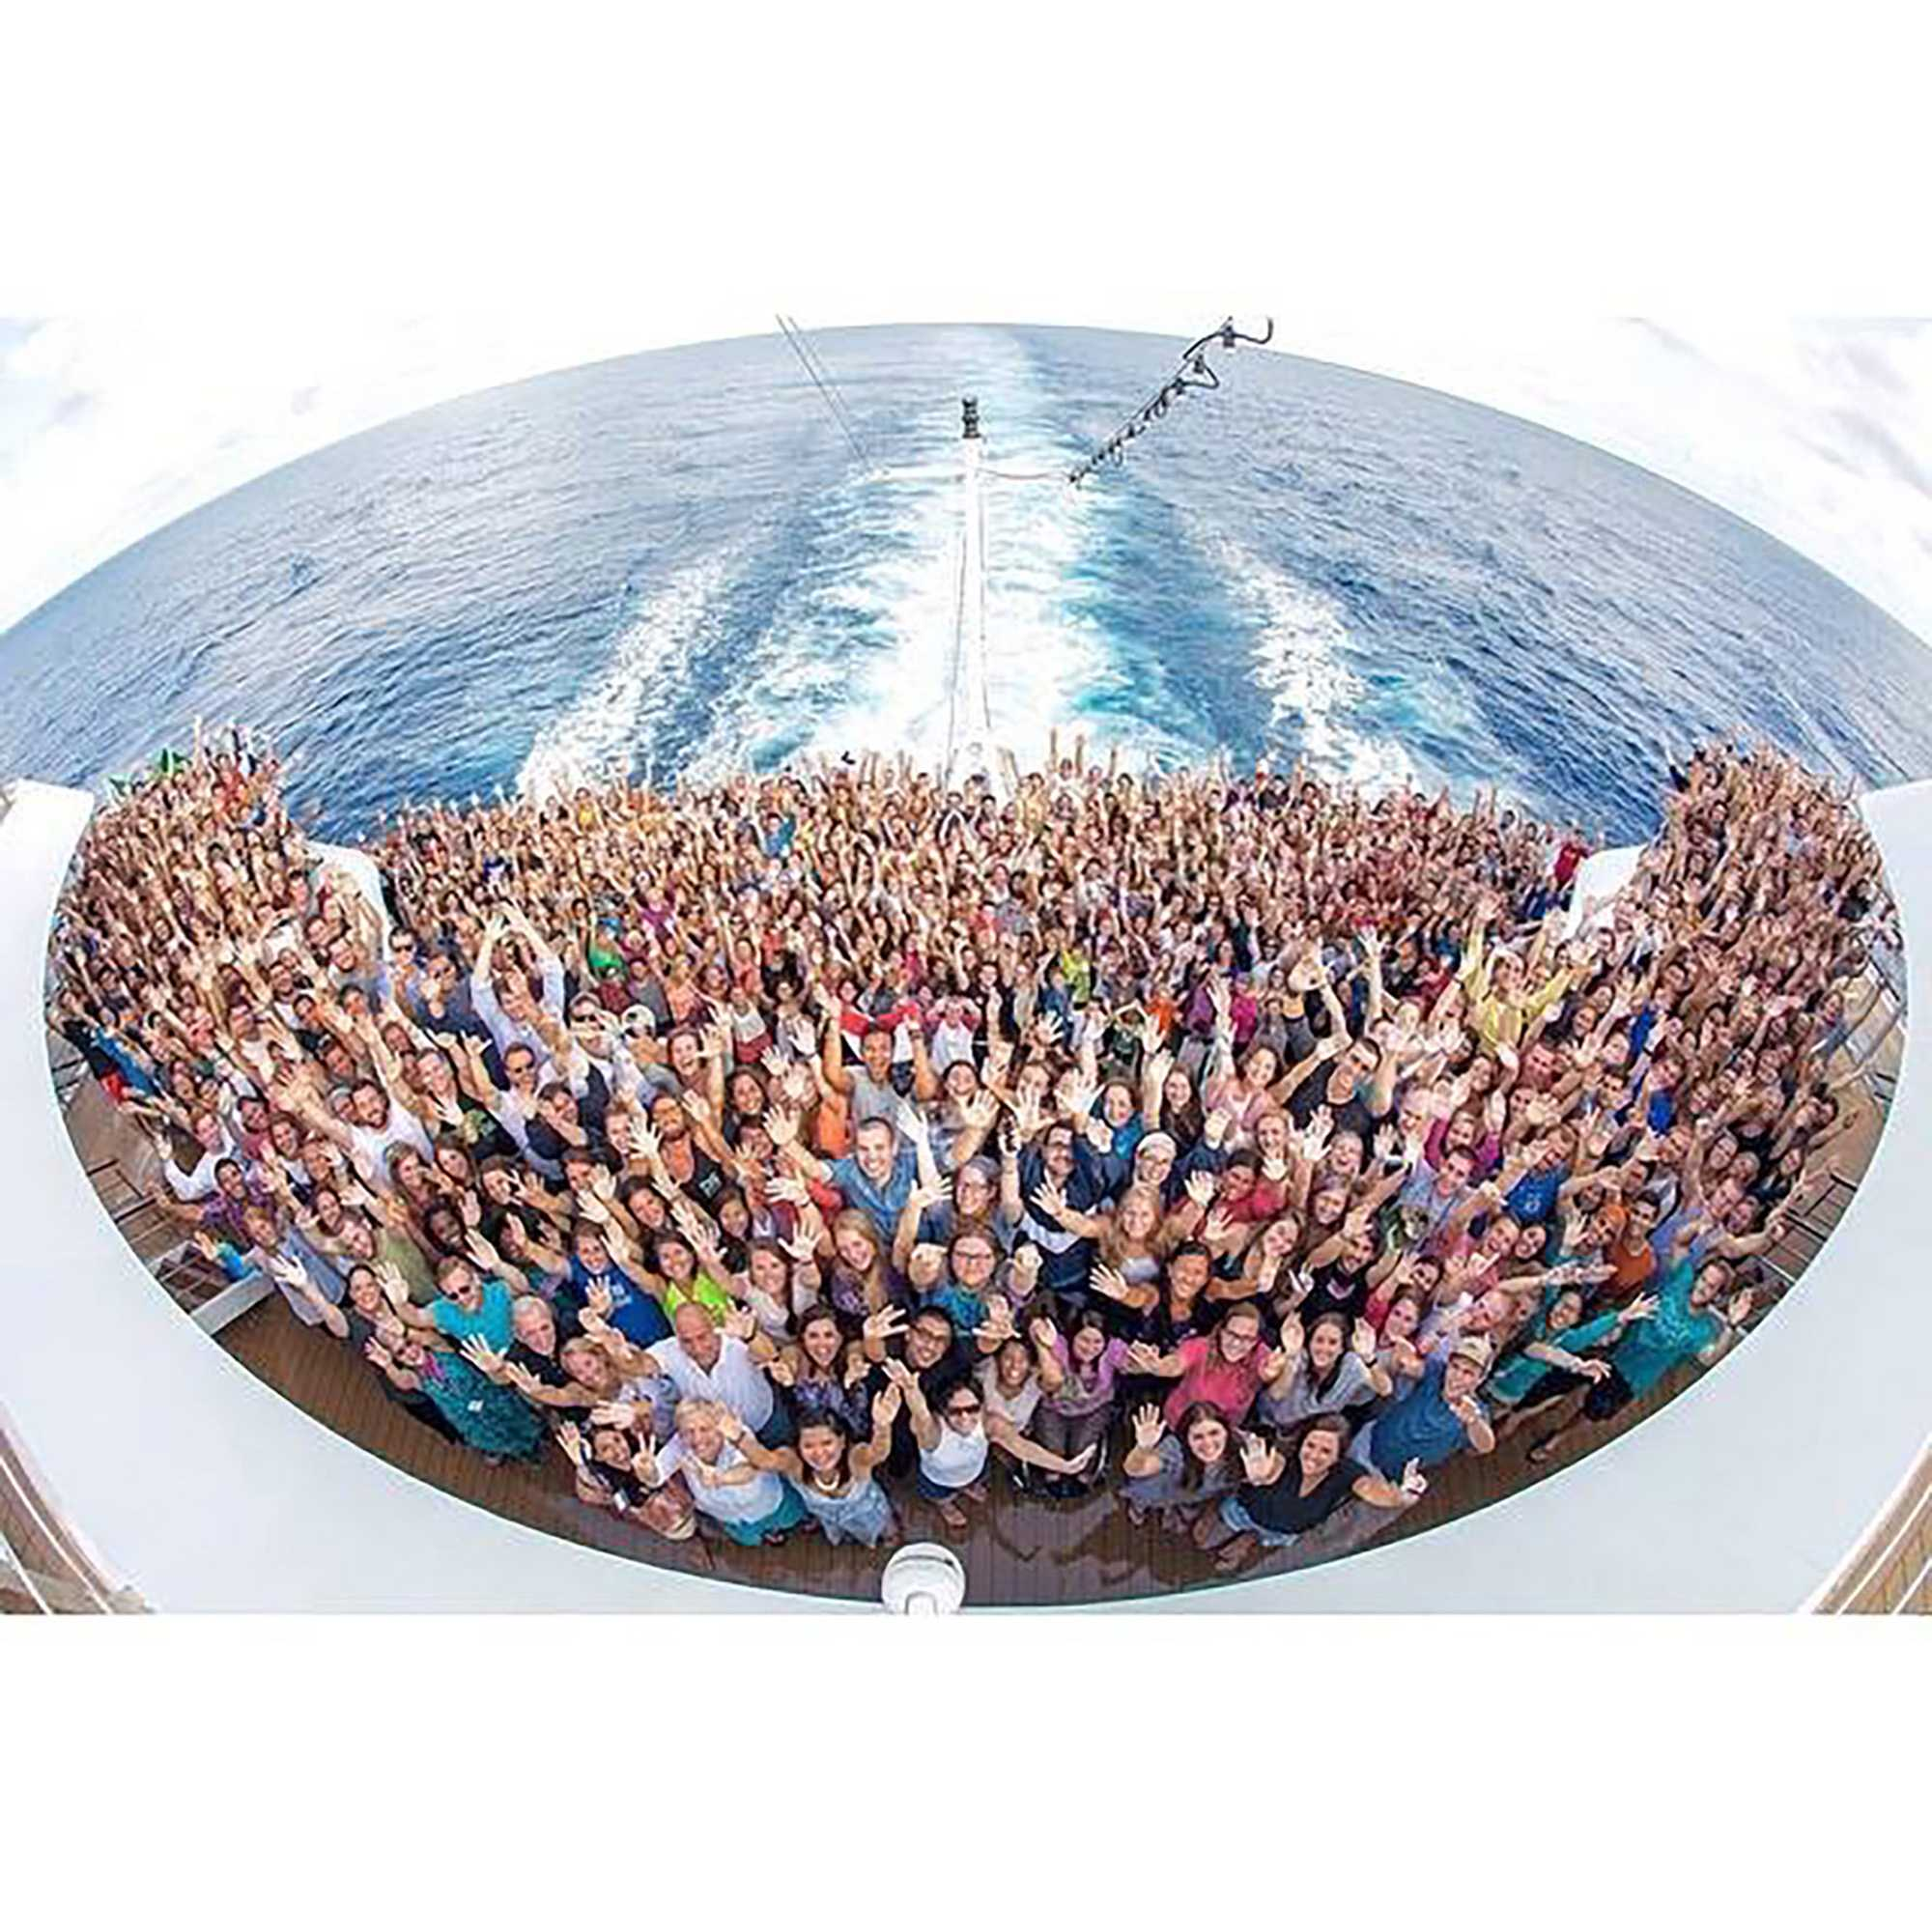 %3Cp%3EMany+students+study+abroad%2C+but+%22Semester+at+Sea%22+brings+a+new+twist.+For+four+months%2C+students+call+a+boat+their+classrooms+and+the+sea+their+campus.%26nbsp%3B%3C%2Fp%3E